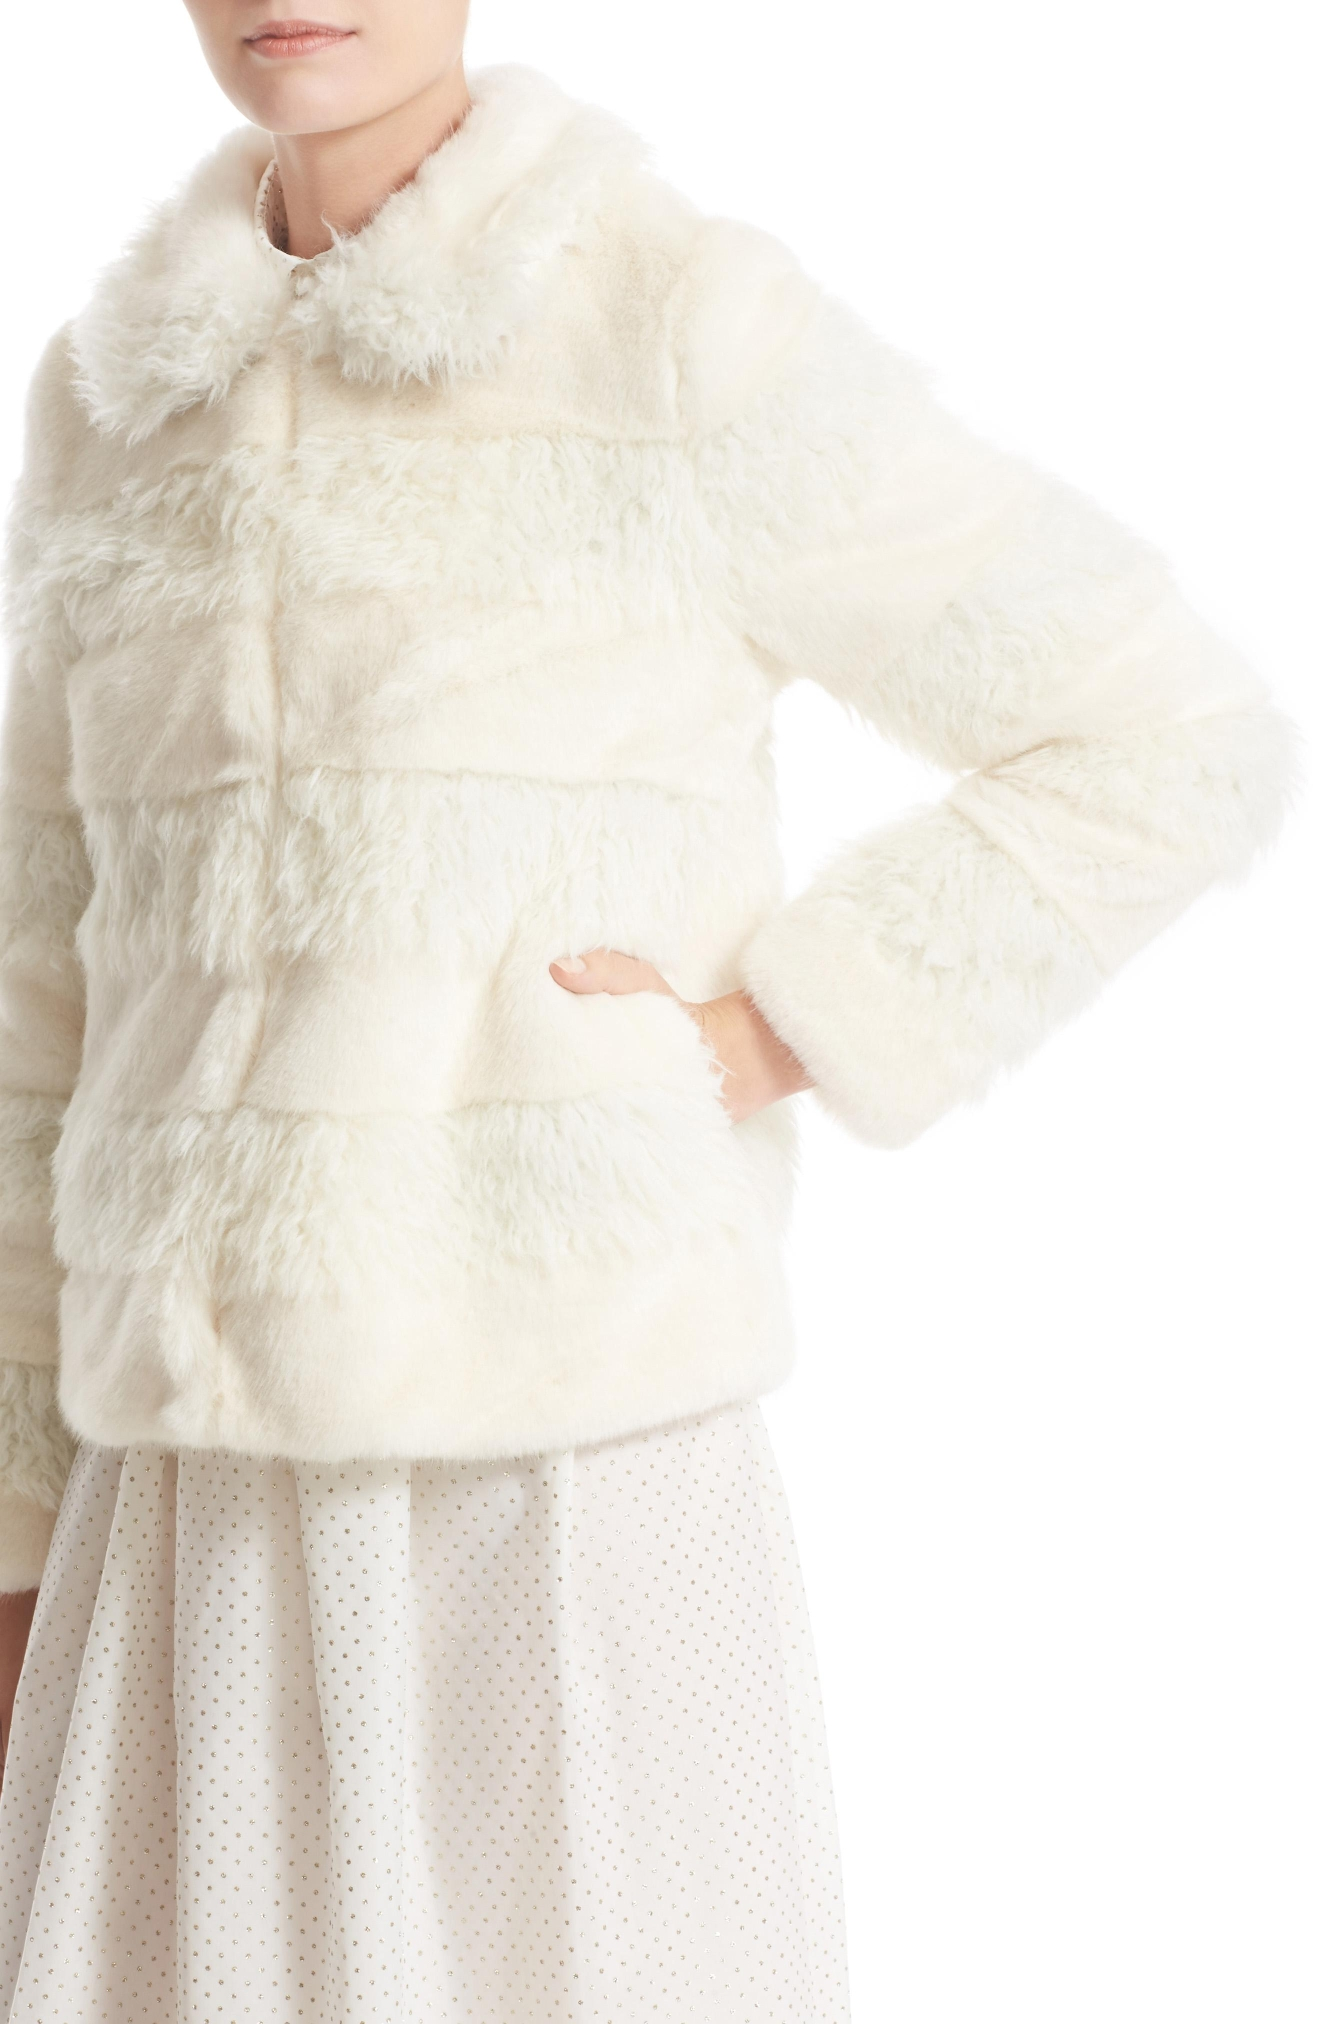 Shrimps Vertical Shearling Coat - $600. Get it at nordstrom.com/space. (Image: Nordstrom)